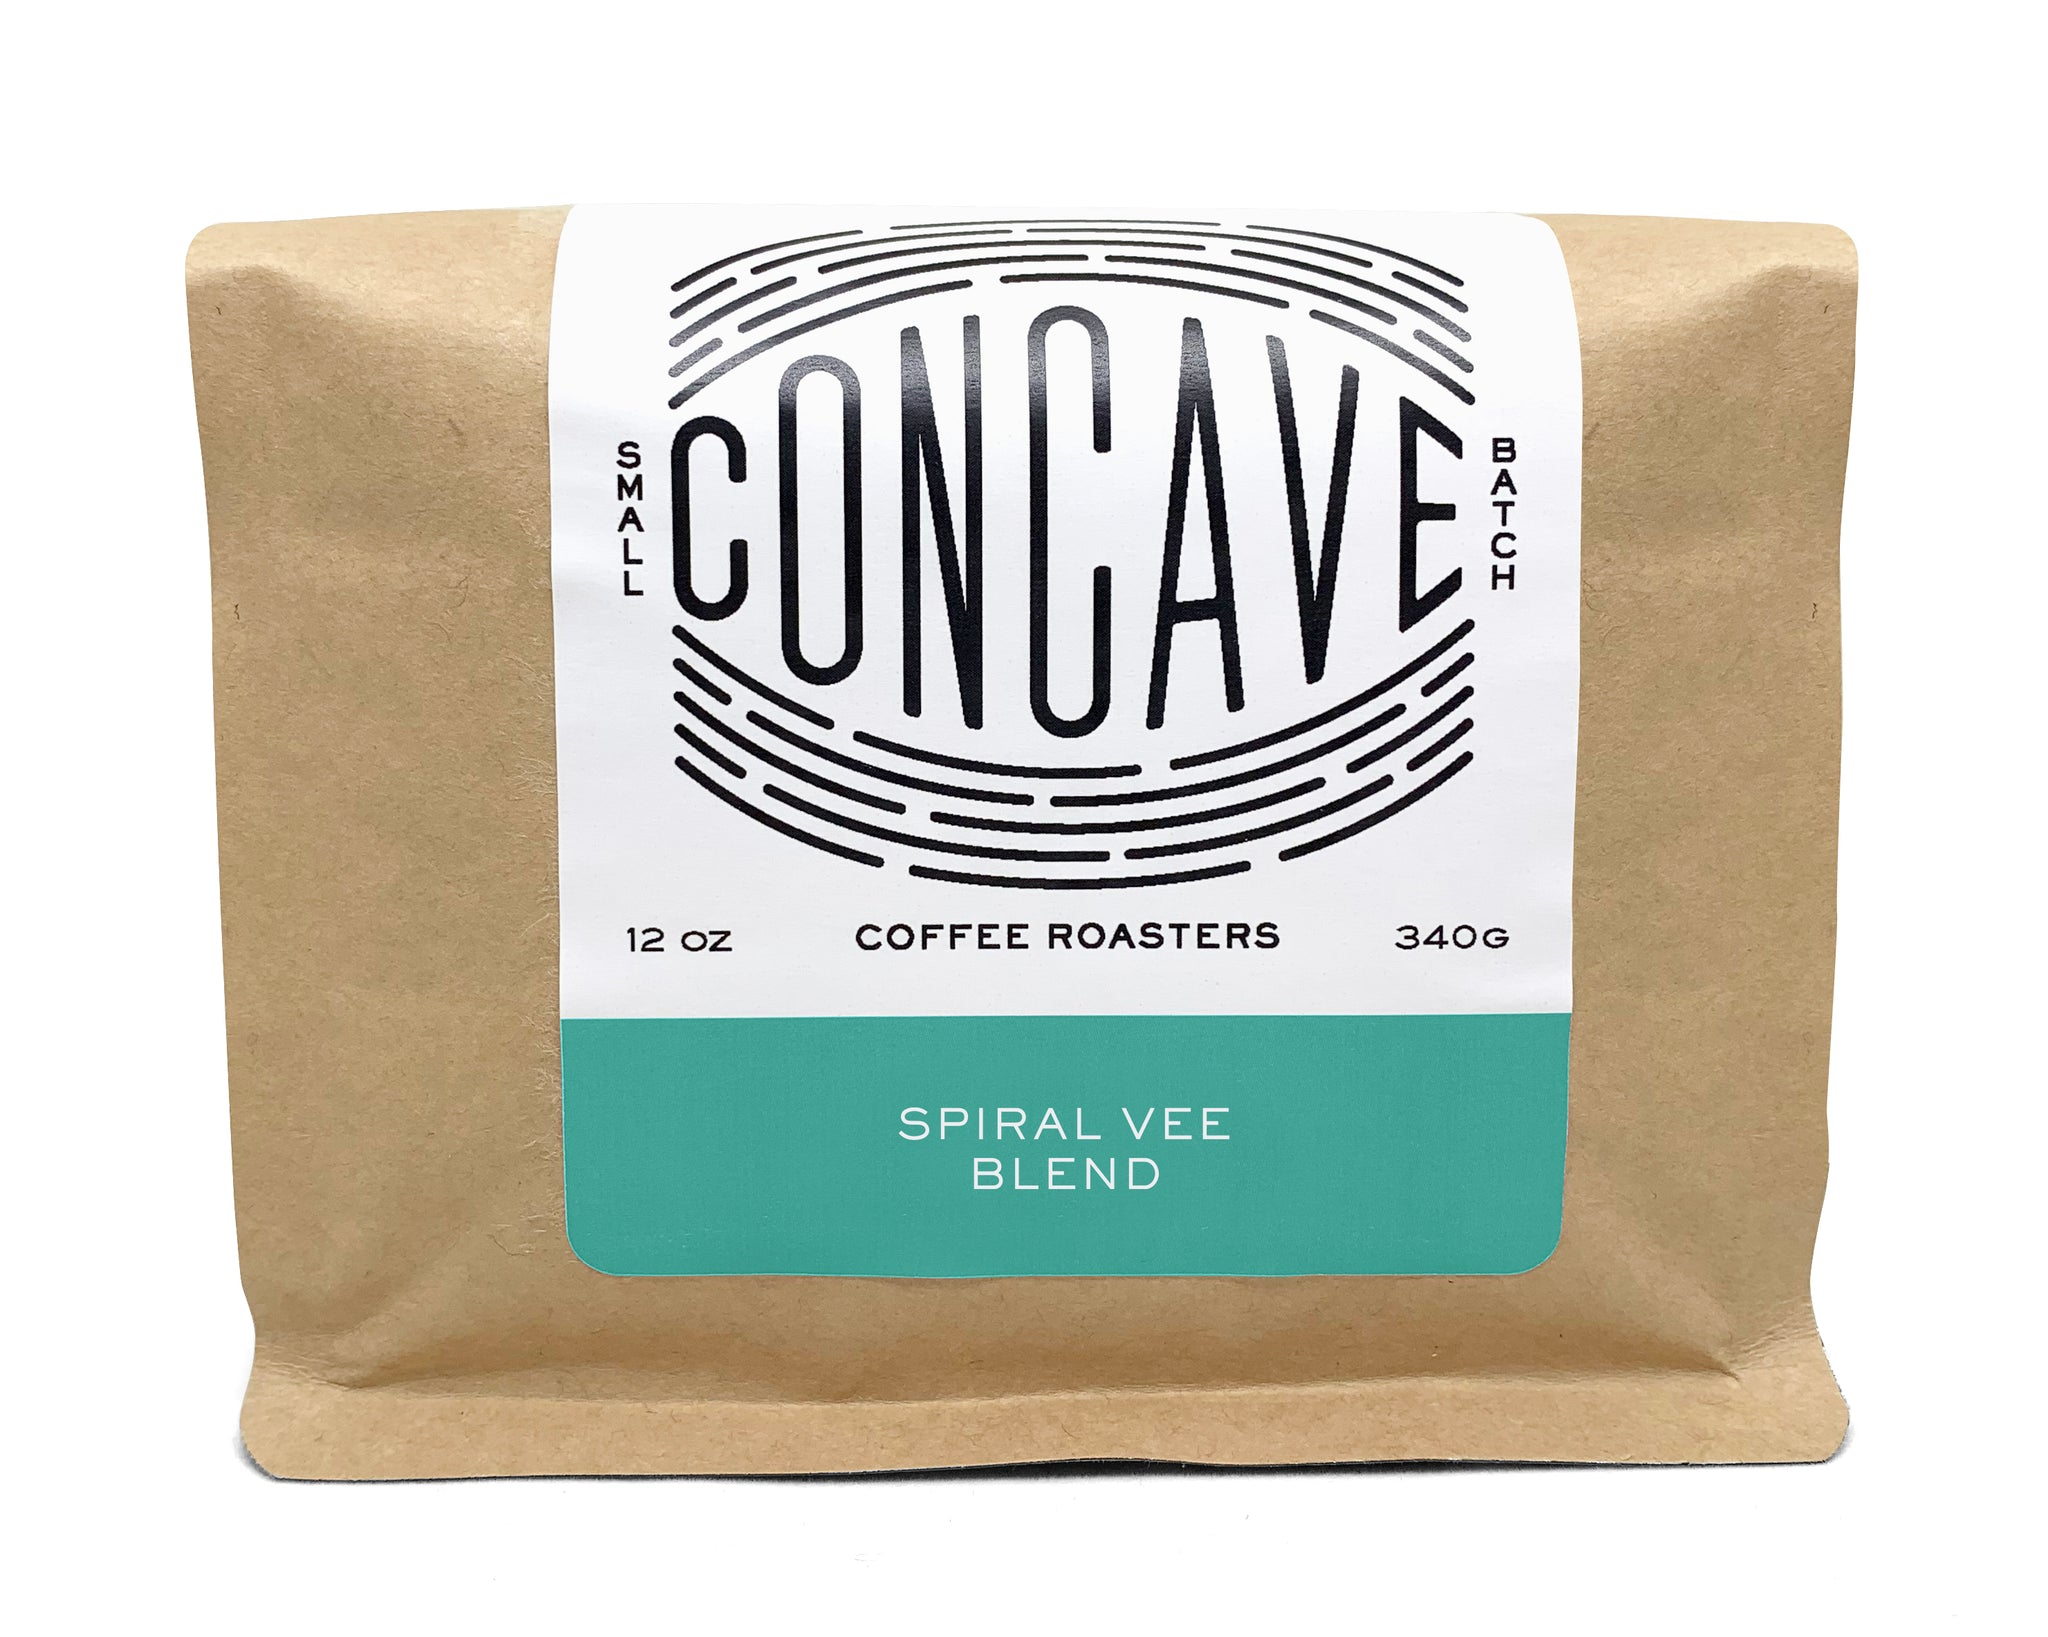 Spiral Vee Blend | Concave Coffee Roasters | Dript Coffee Co.